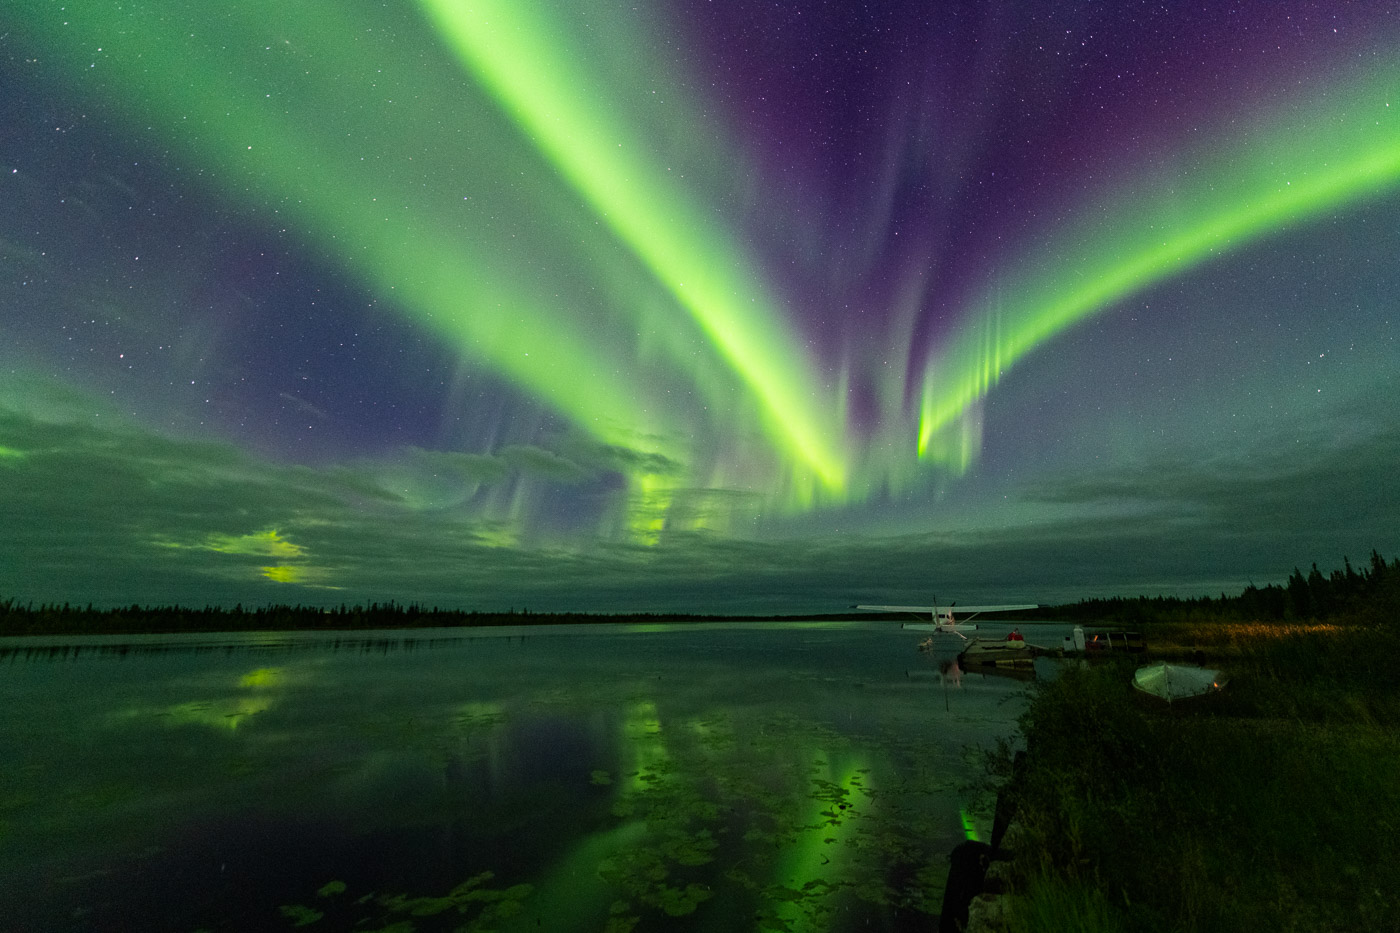 Northern lights streaking green and purple over a float plane dock in Northern Alberta